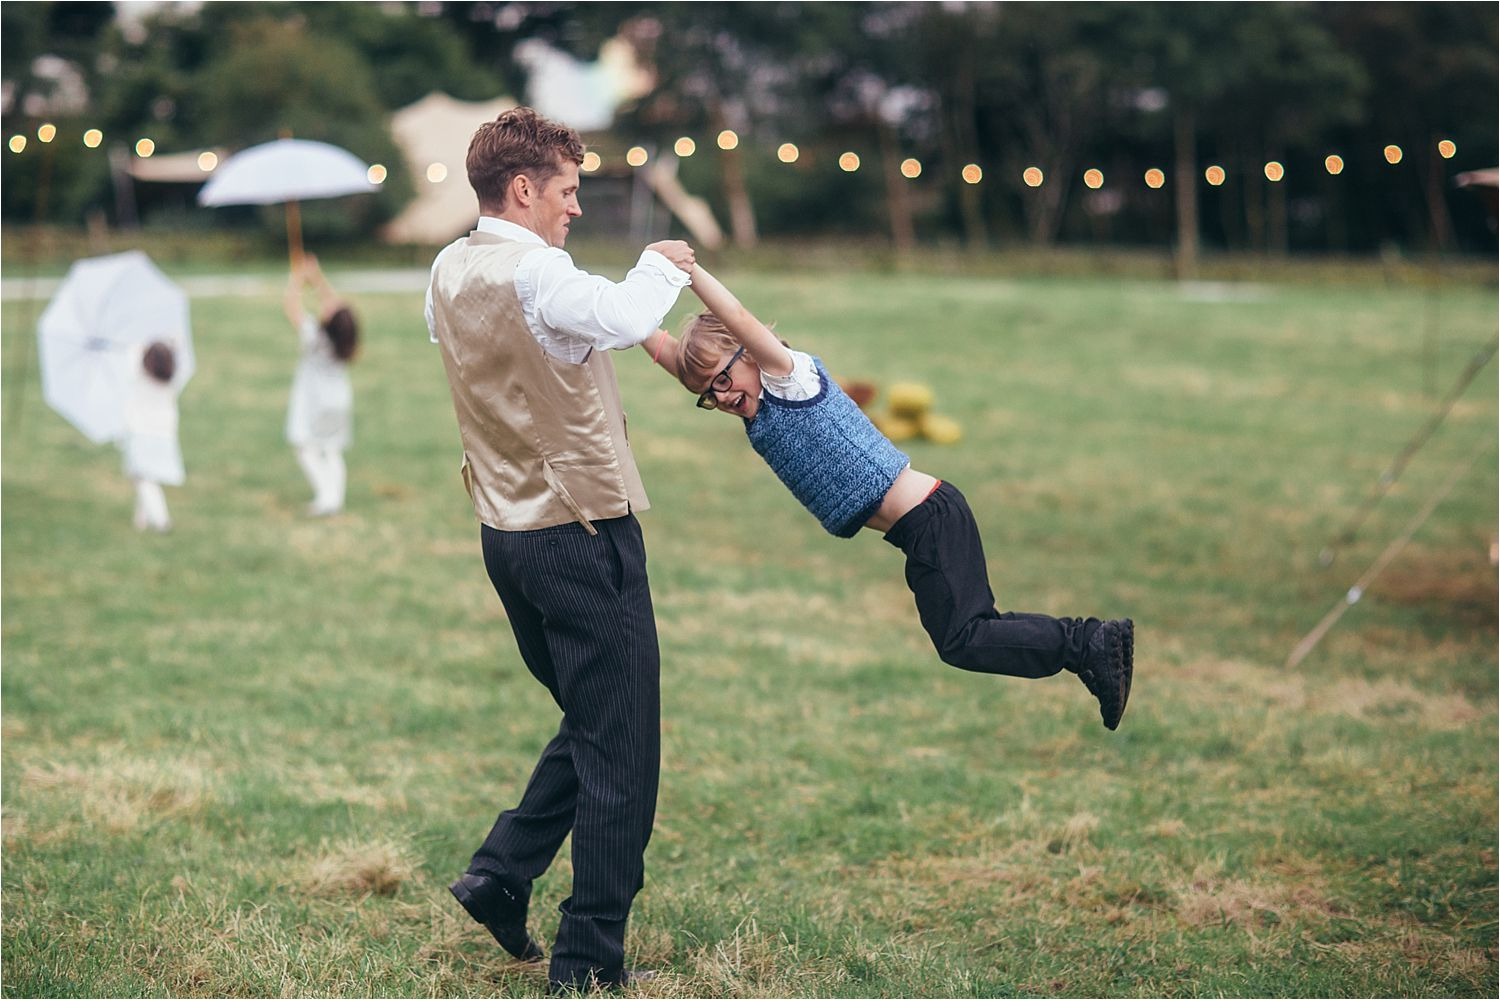 Guest swingin his son round at rural tipi wedding